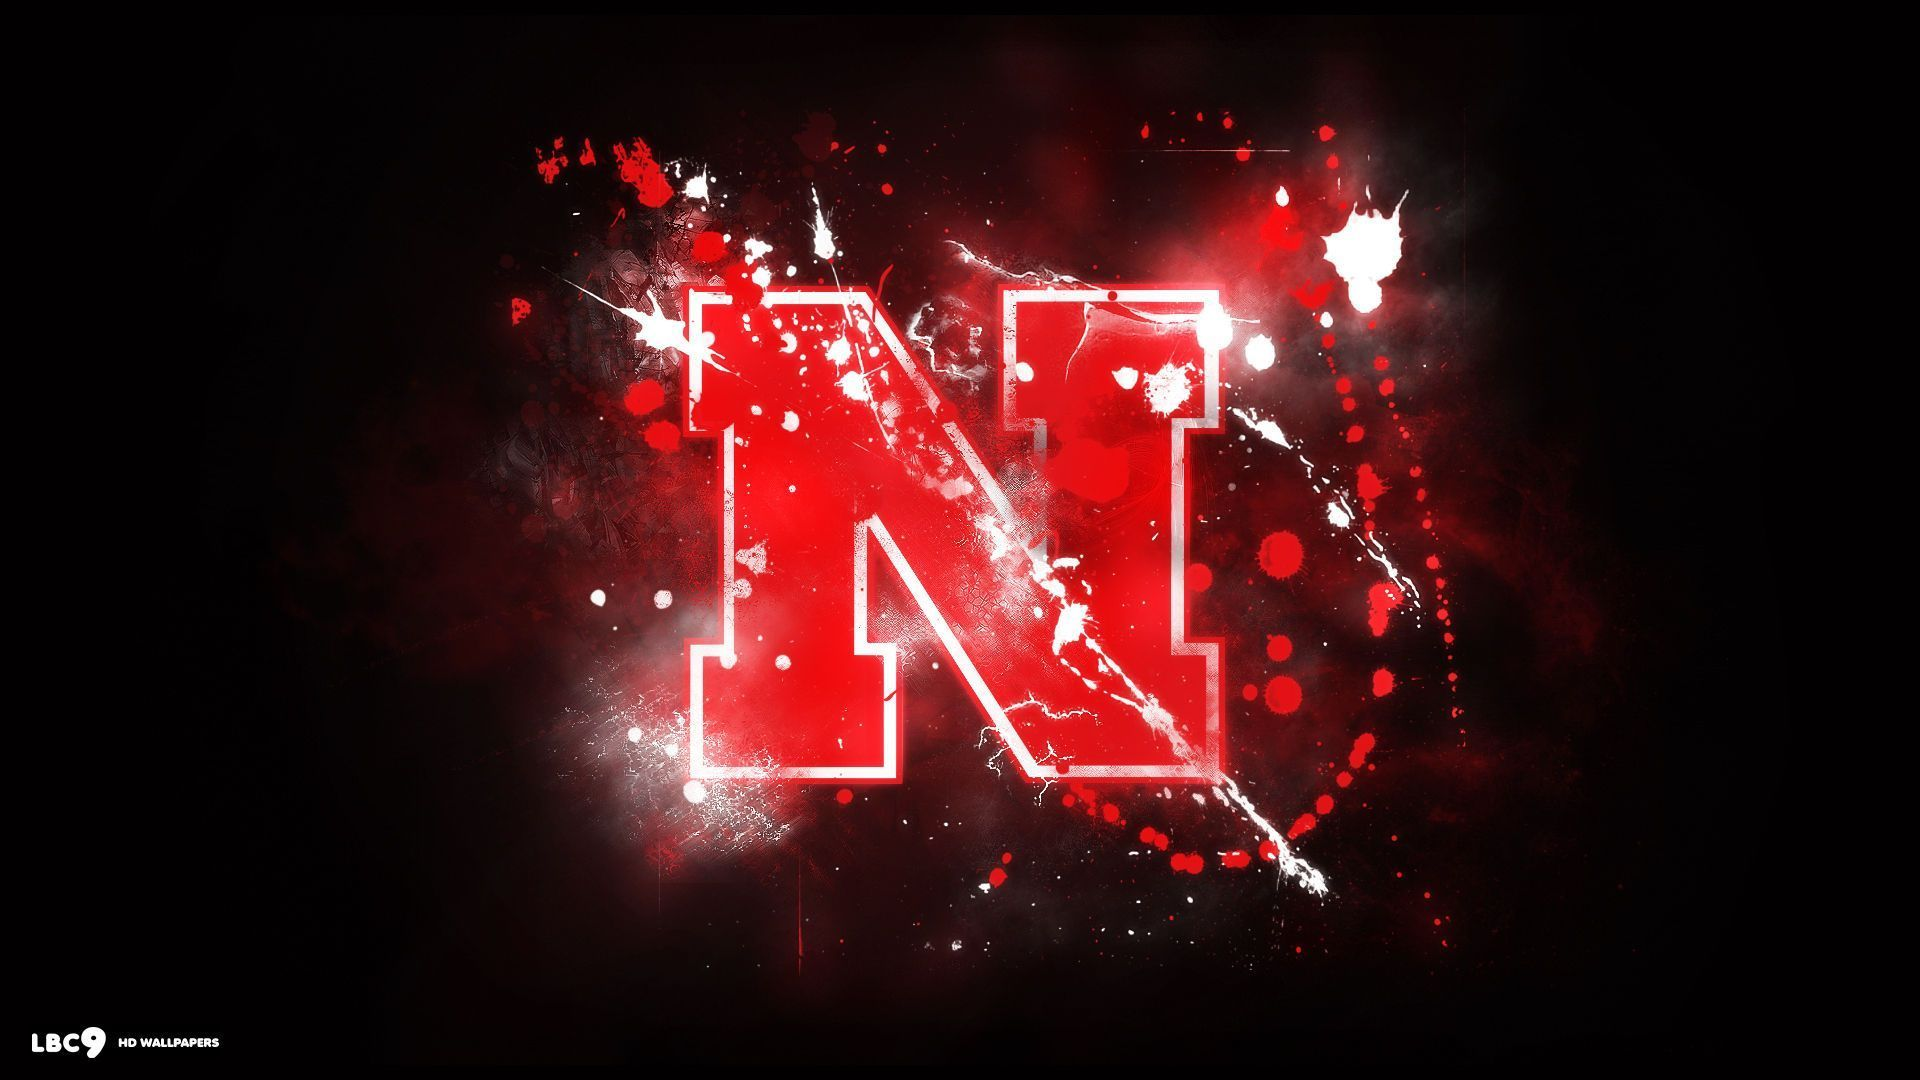 Get A Set Of 12 Officially Ncaa Licensed Nebraska Huskers Iphone Wallpapers Sized For Any Model Of Iphone With Your Team S Exa Husker Nebraska Huskers Nebraska